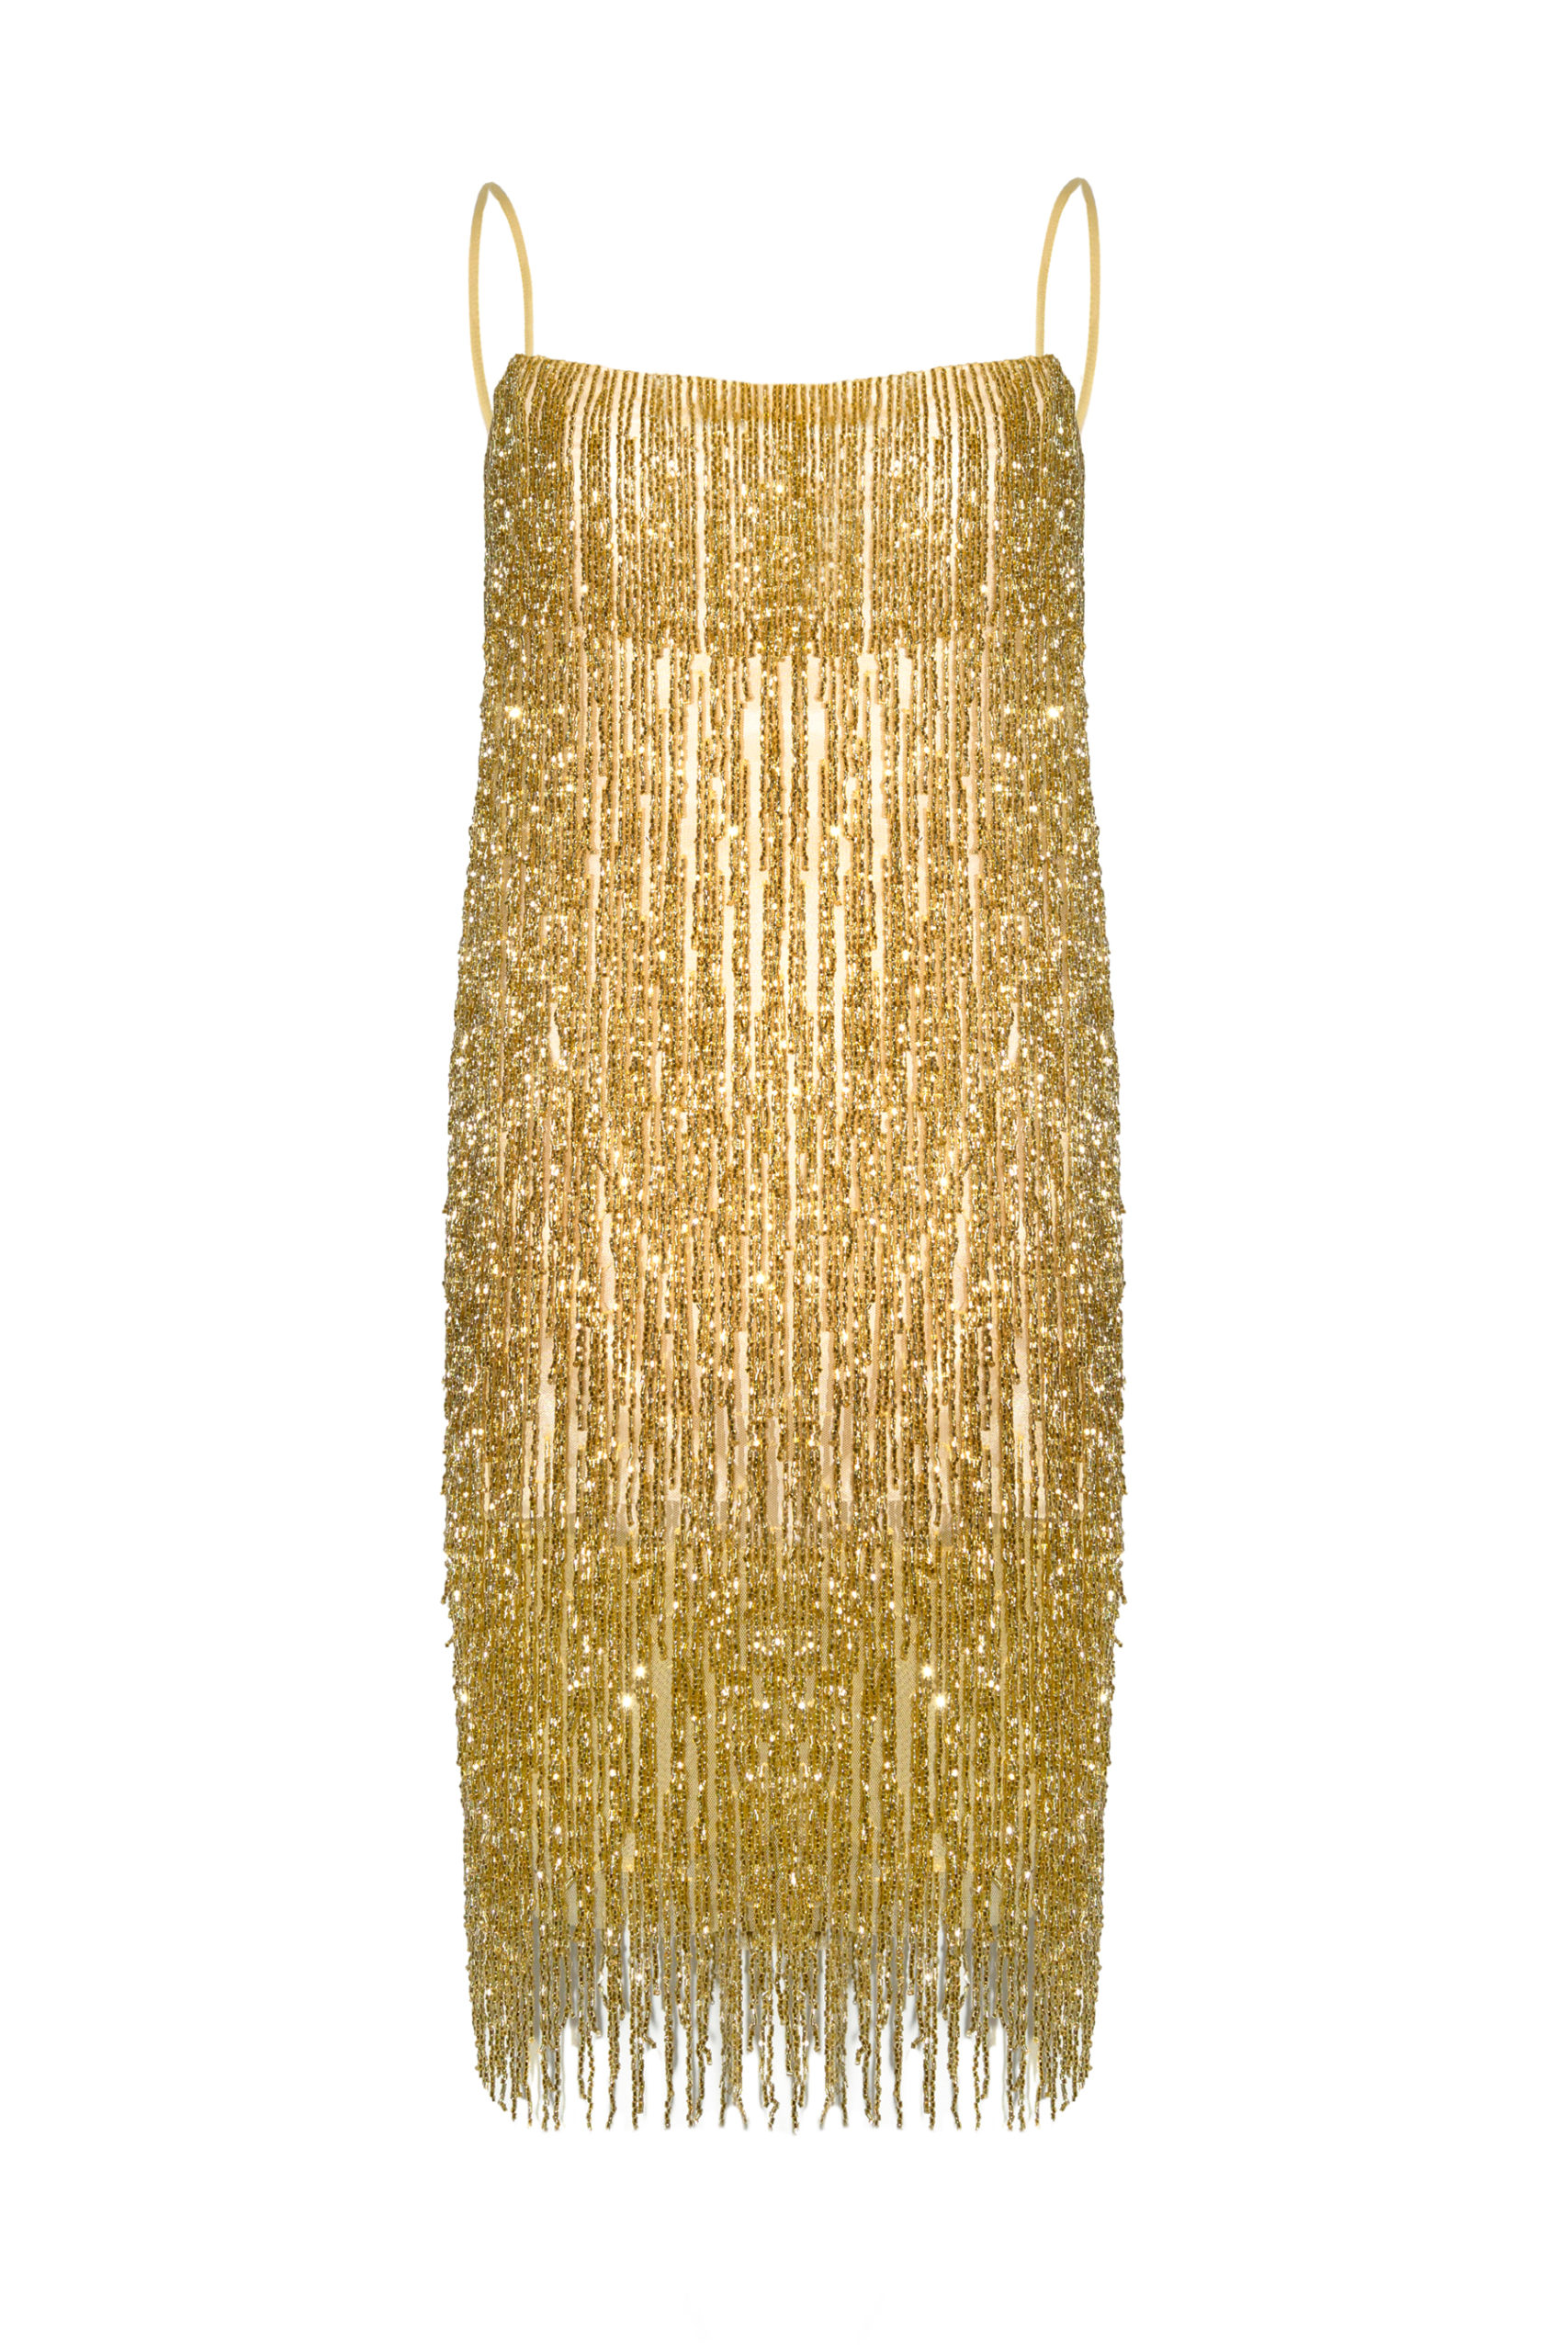 Crystal gold dress